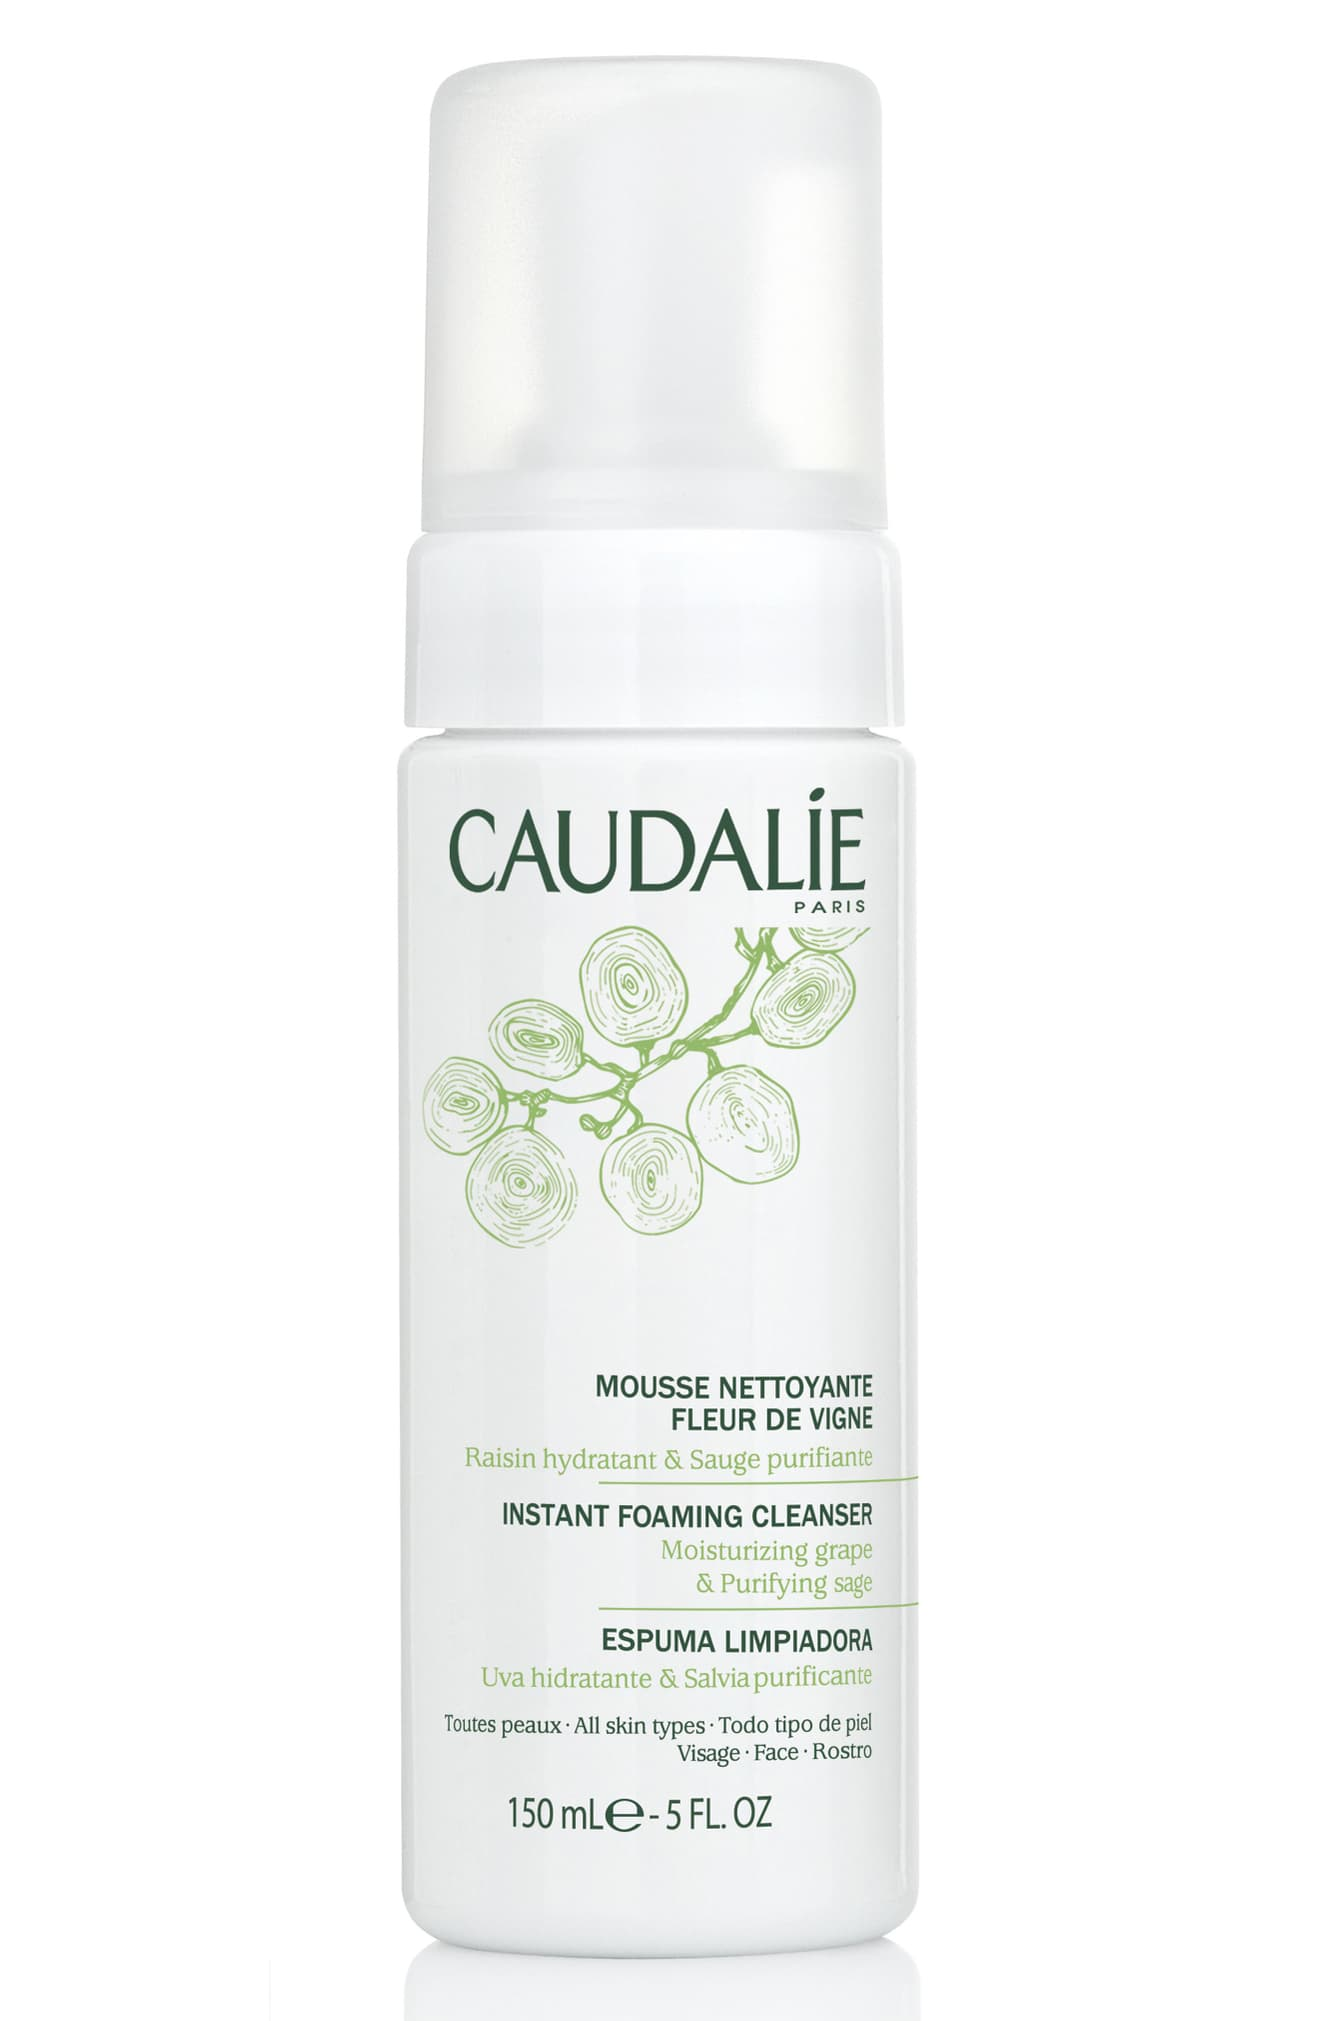 CAUDALÍE Instant Foaming Cleanser